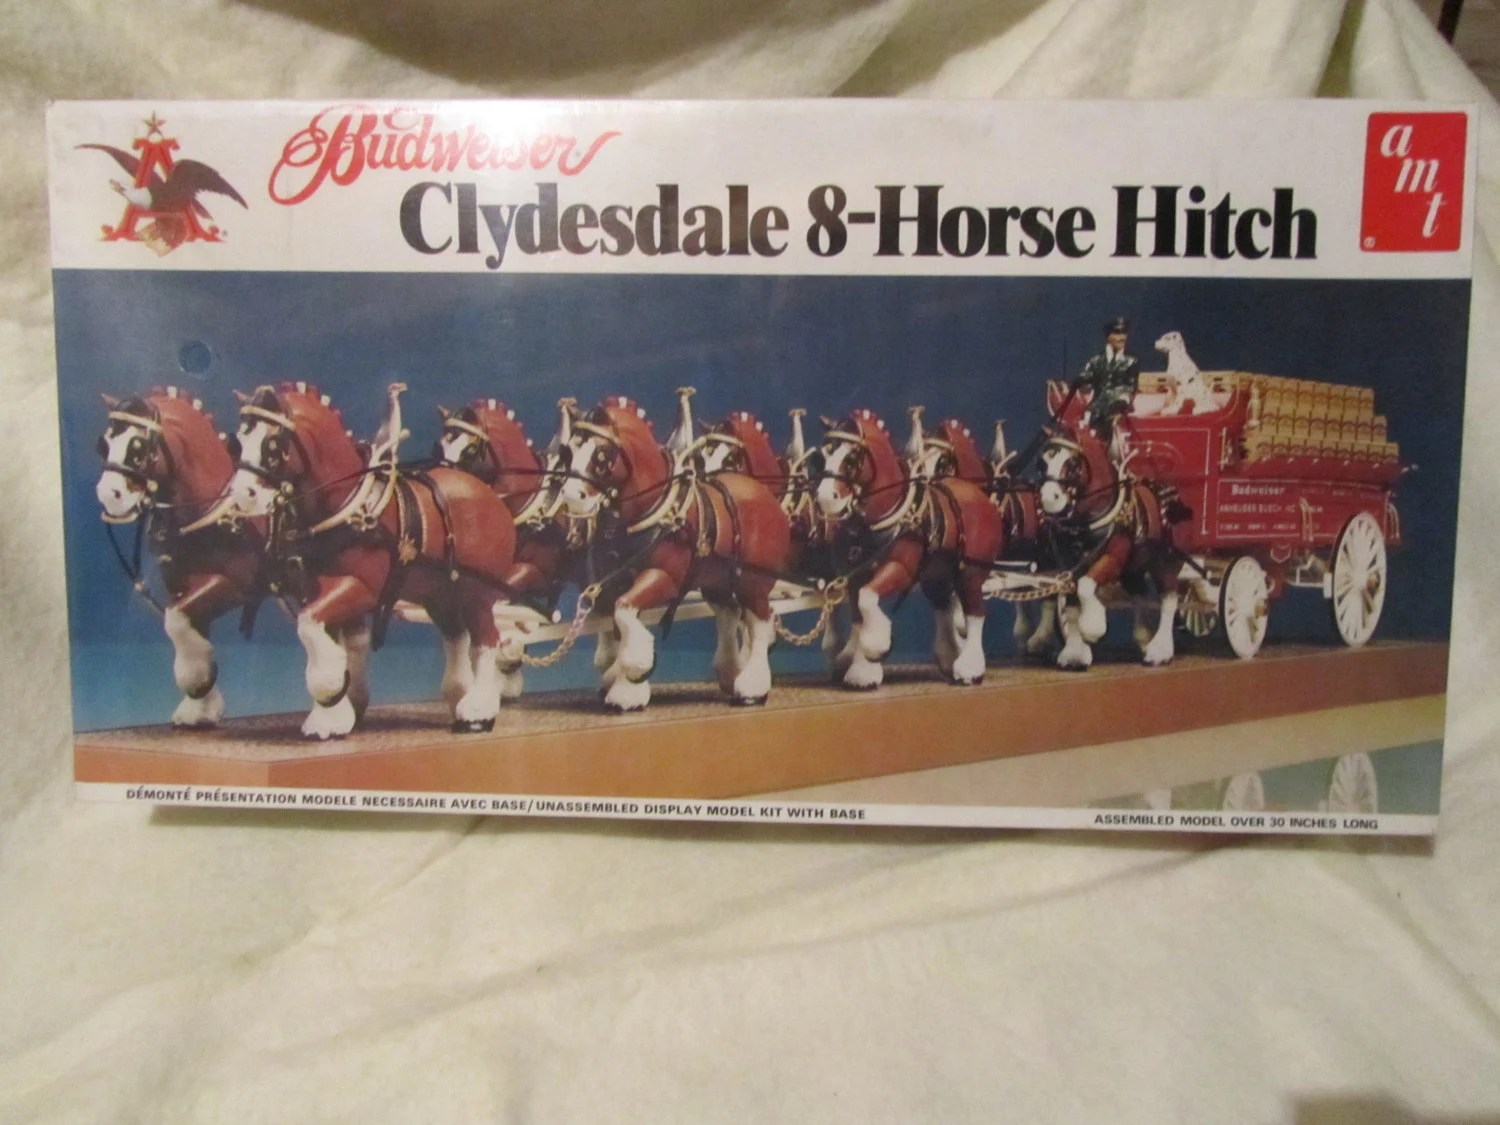 Budweiser Clydesdale 8 Horse Hitch Model Kit AMT 7702